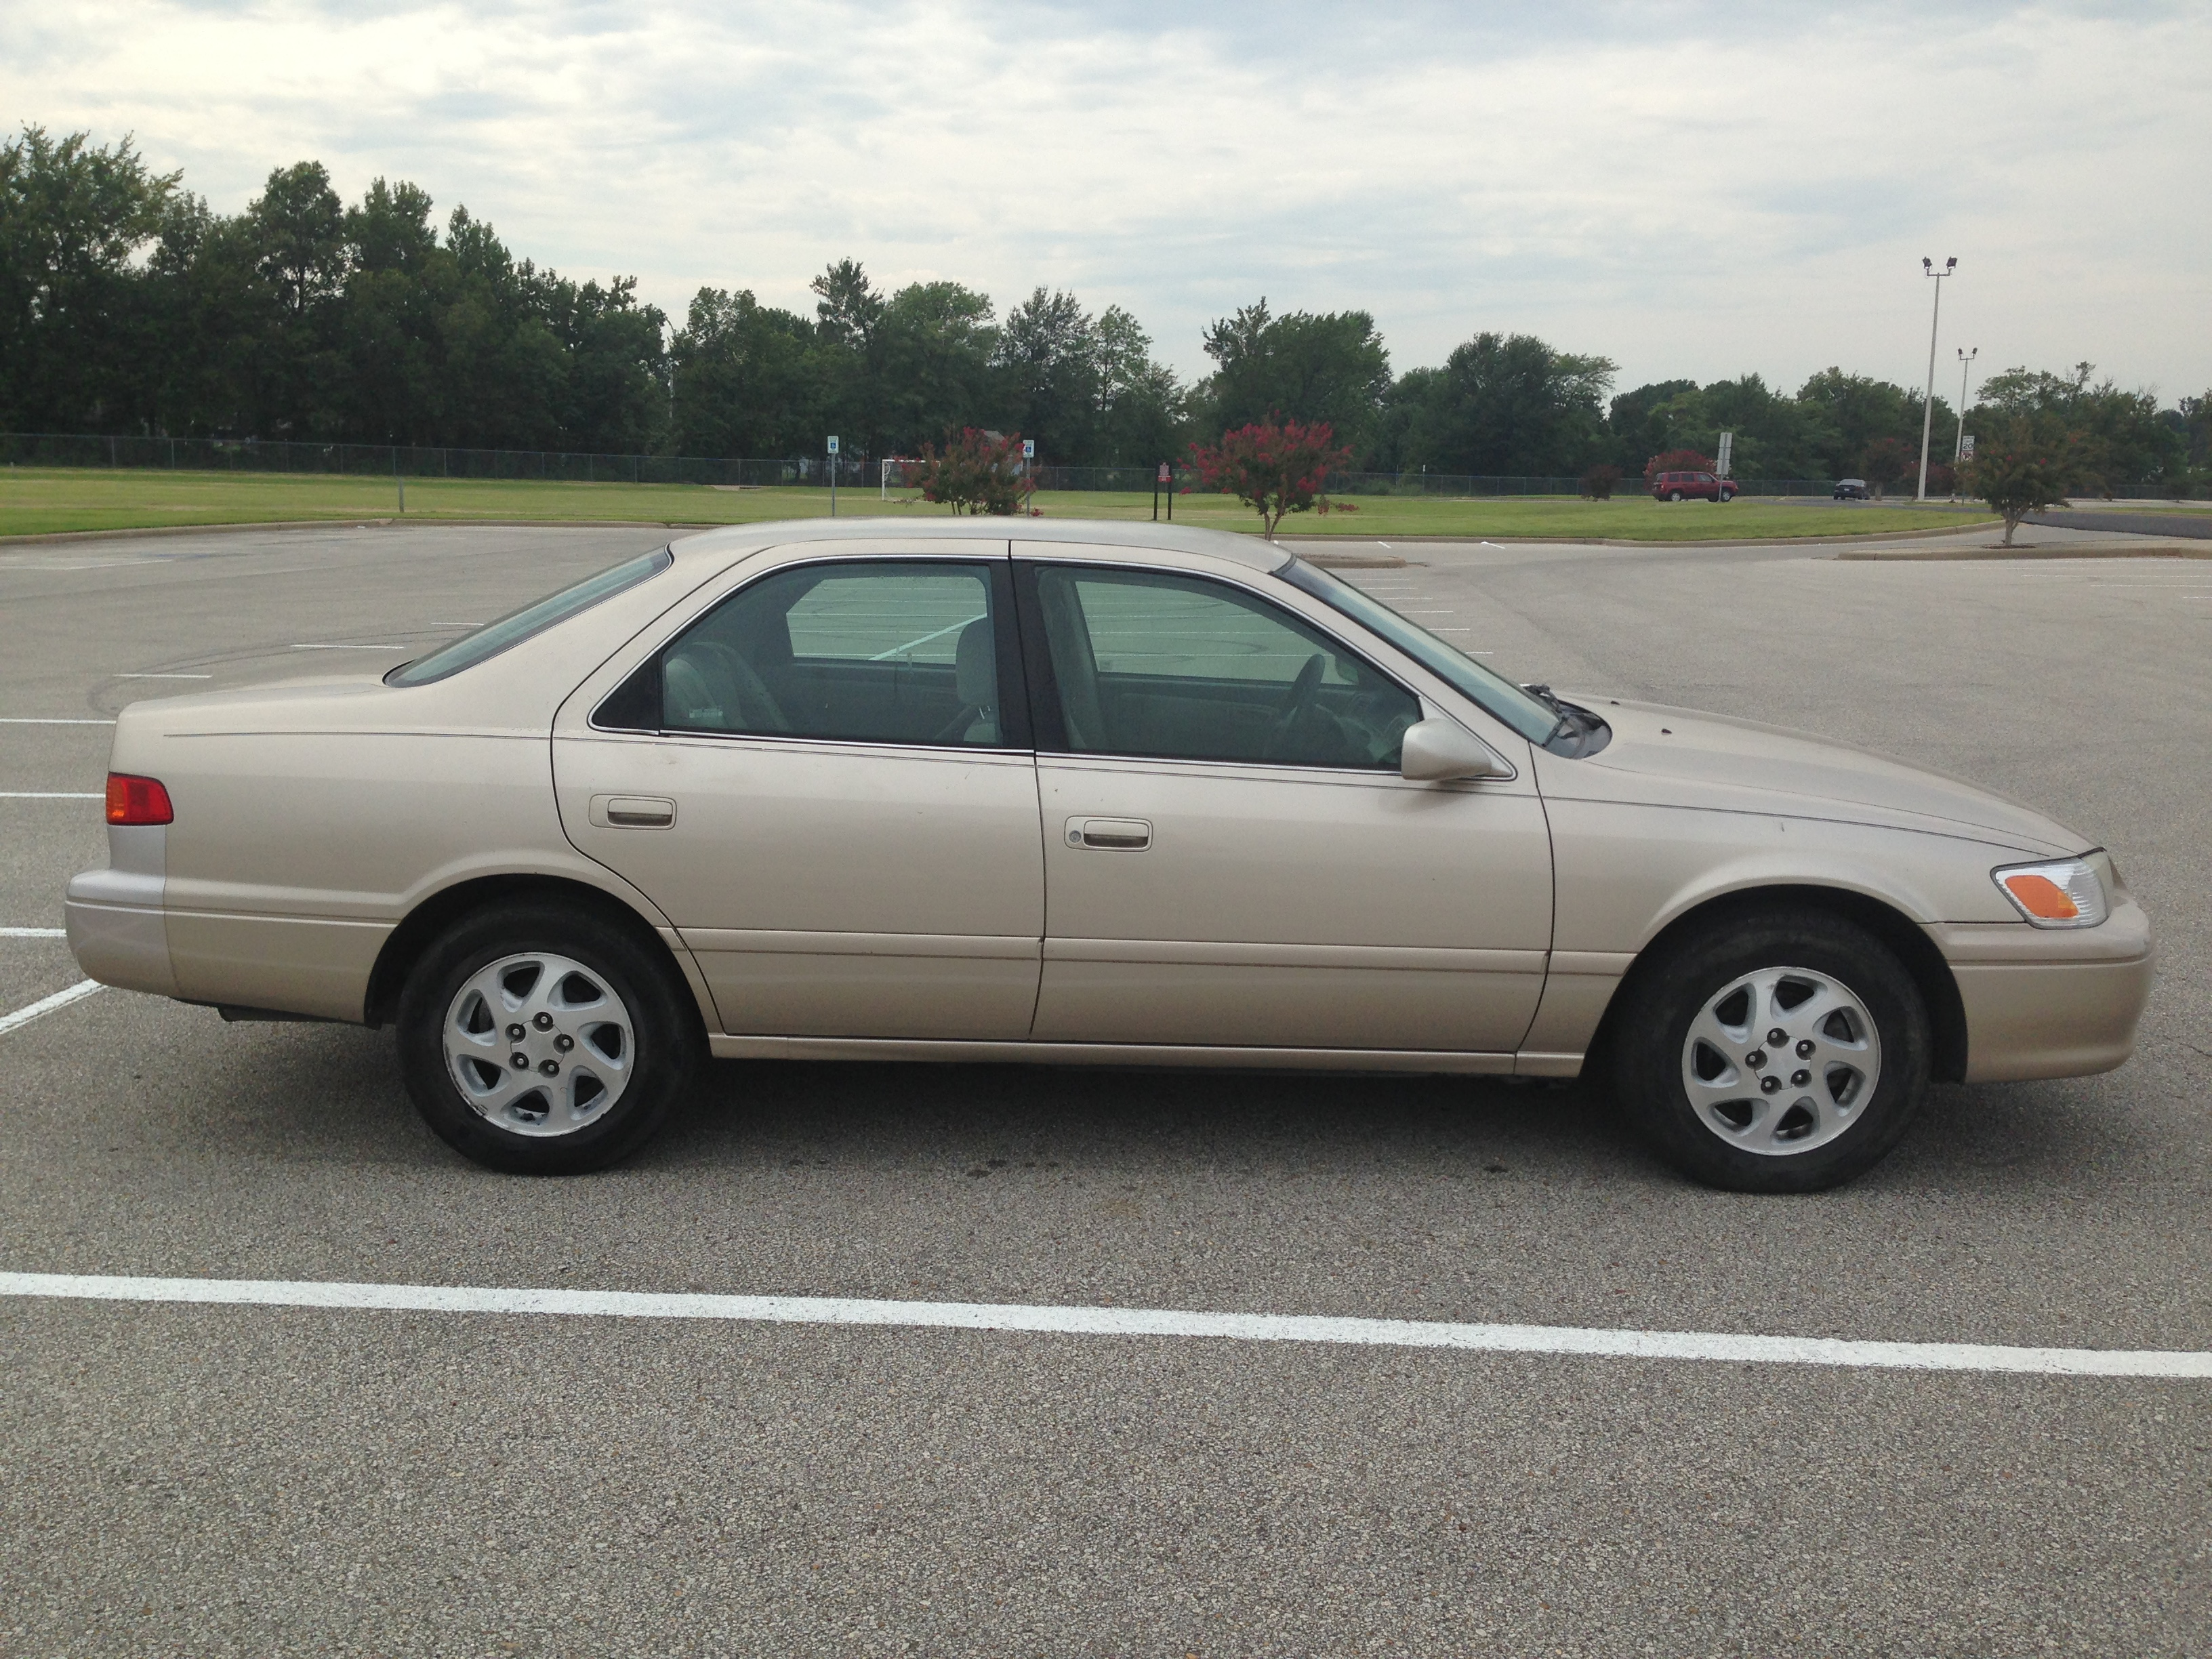 Gold 2001 Toyota Camry | J & L Auto Sales